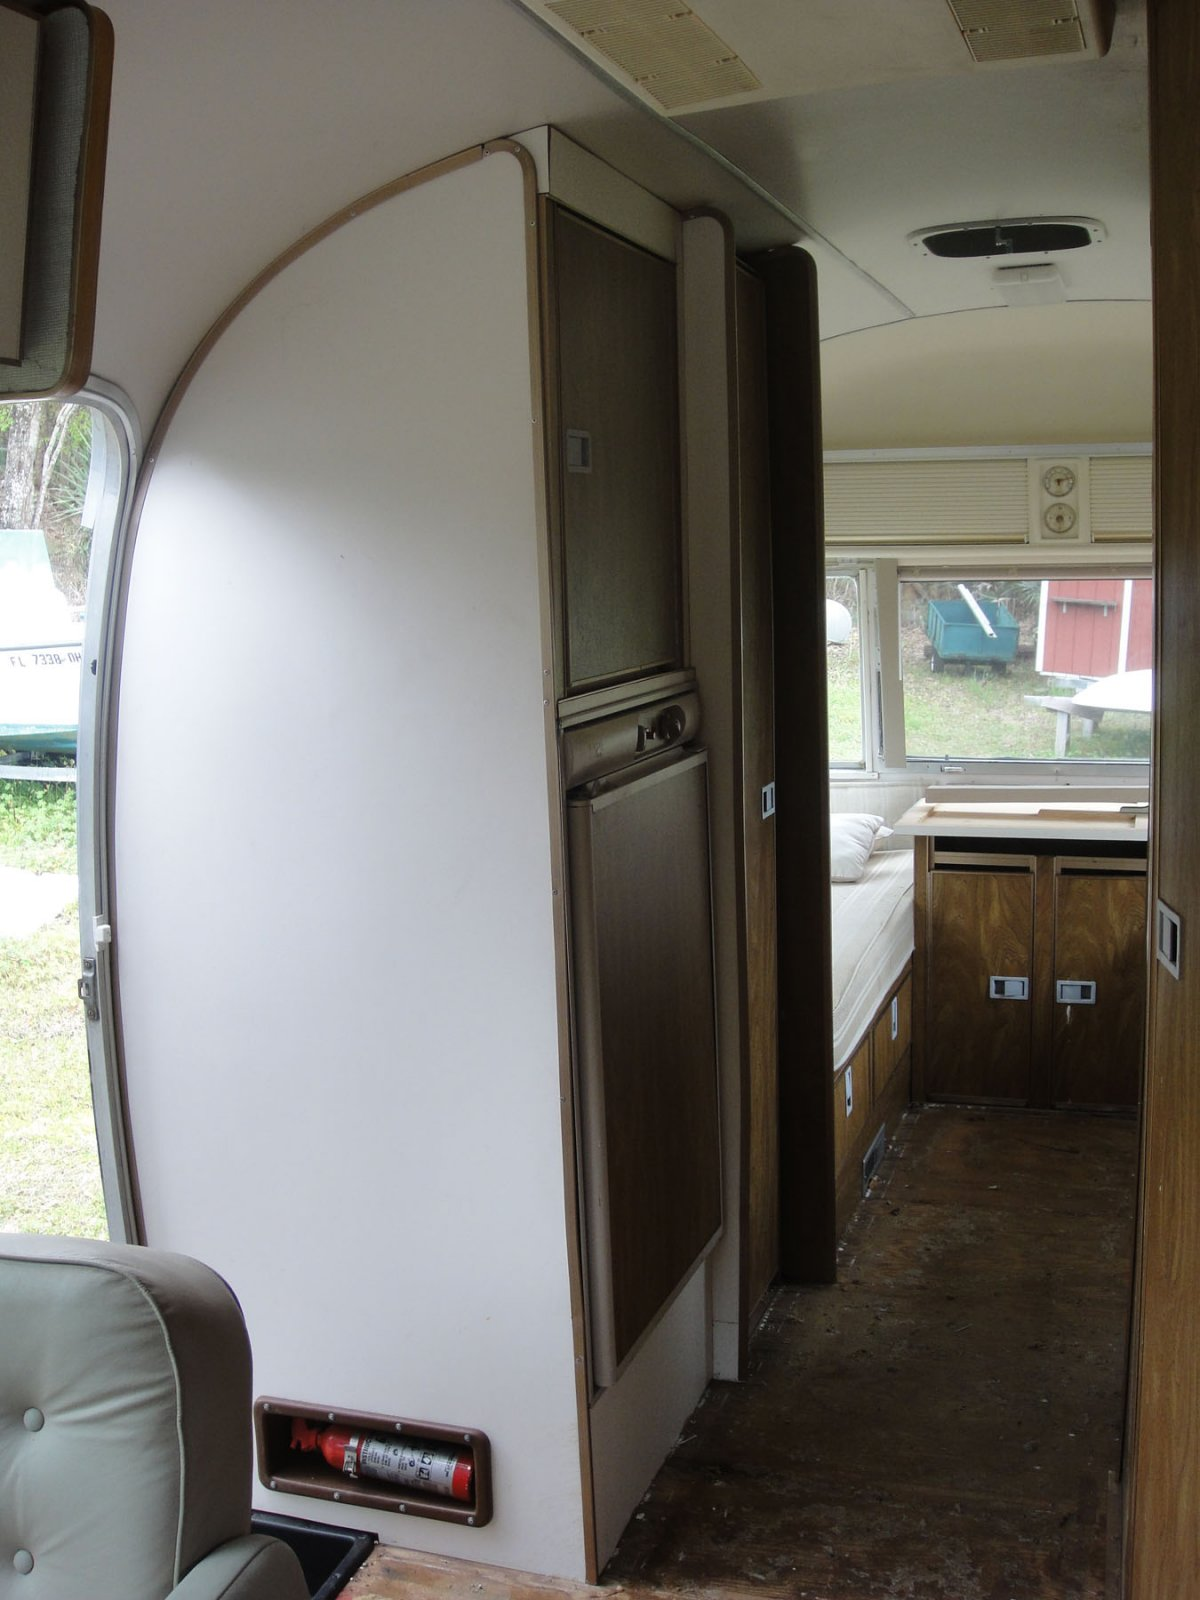 Click image for larger version  Name:interior 3-18-10 006.jpg Views:90 Size:198.3 KB ID:98618